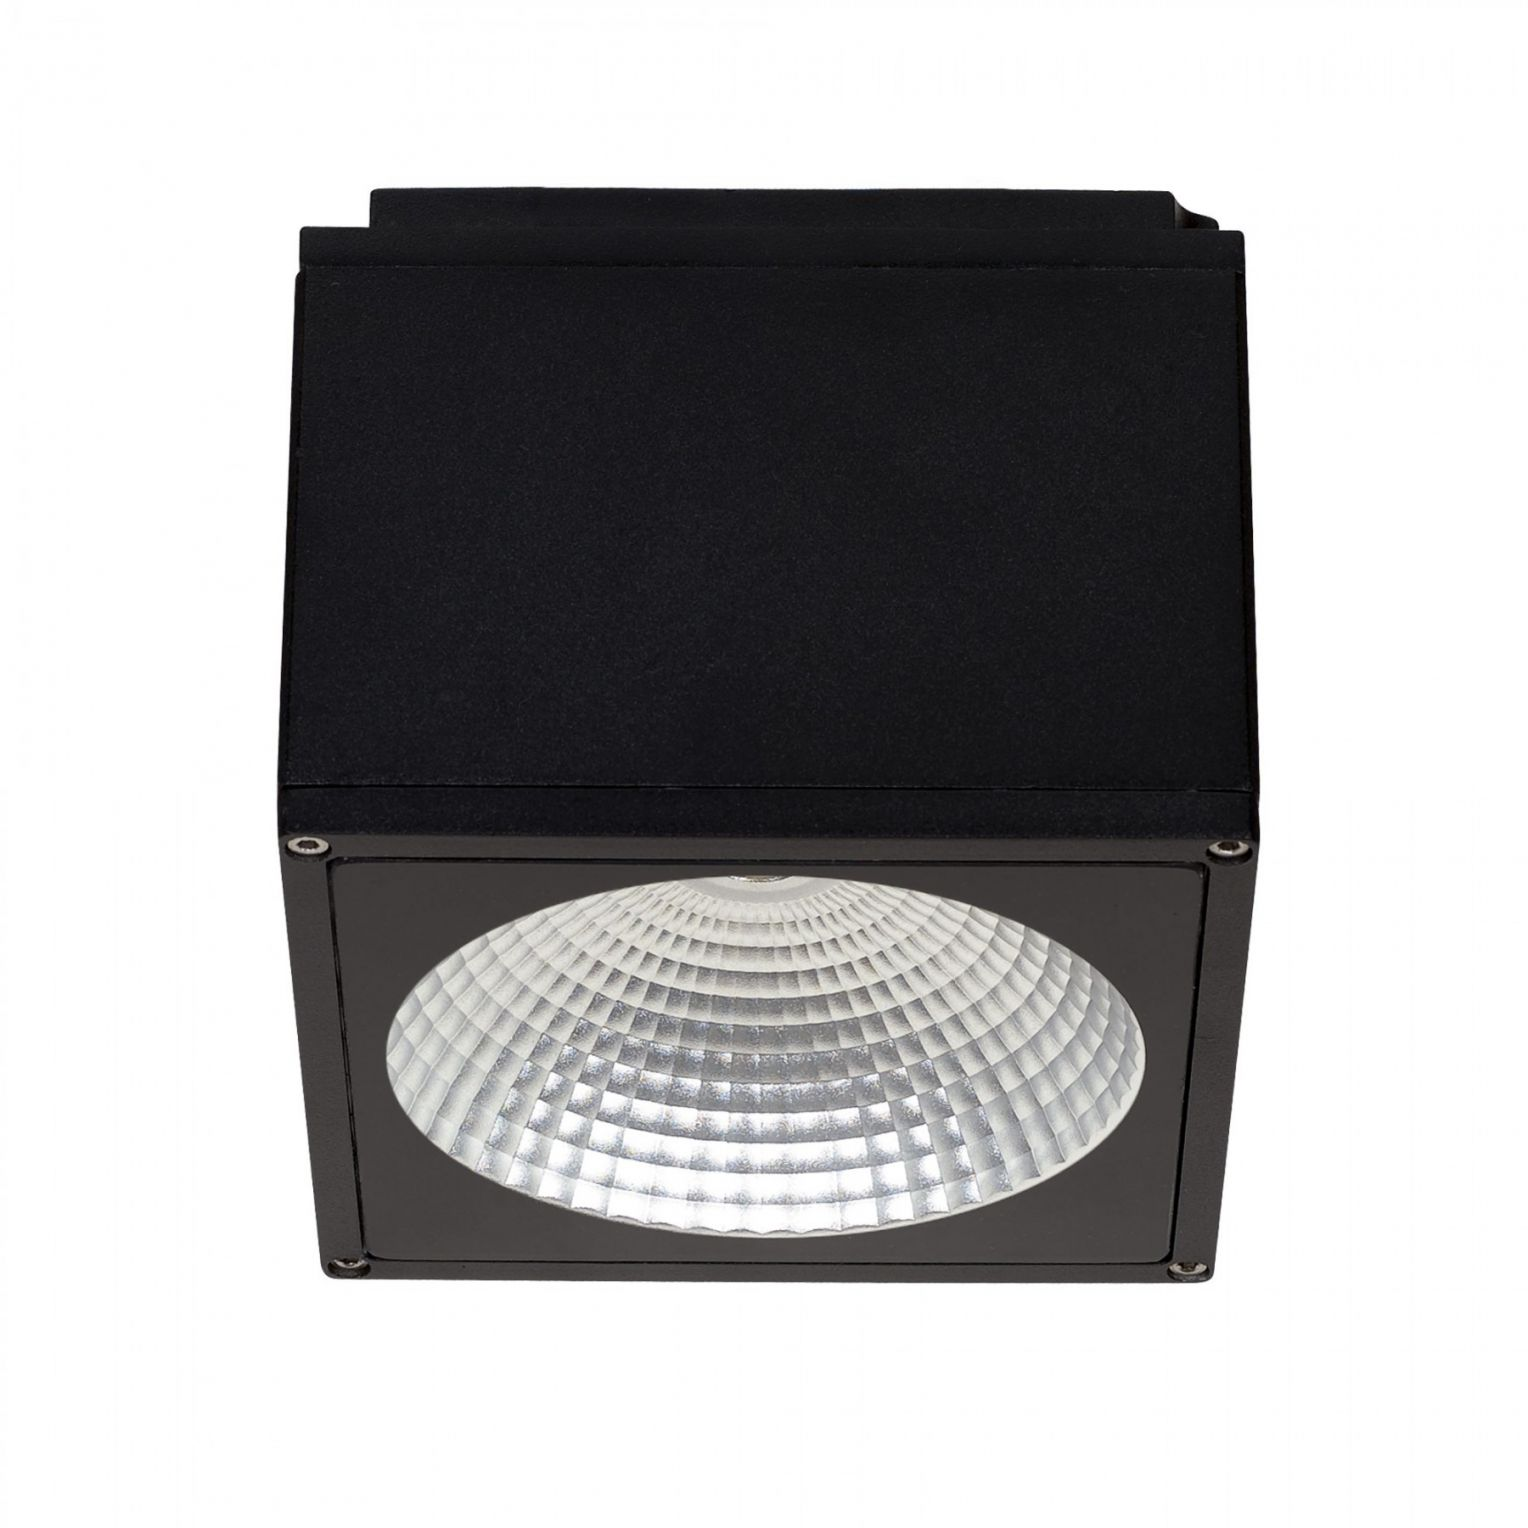 Alcon lighting 11224 tf pavo turtle friendly architectural led 6 alcon lighting 11224 tf pavo turtle friendly architectural led 6 inch square surface ceiling mount direct down light fixture alconlighting arubaitofo Images